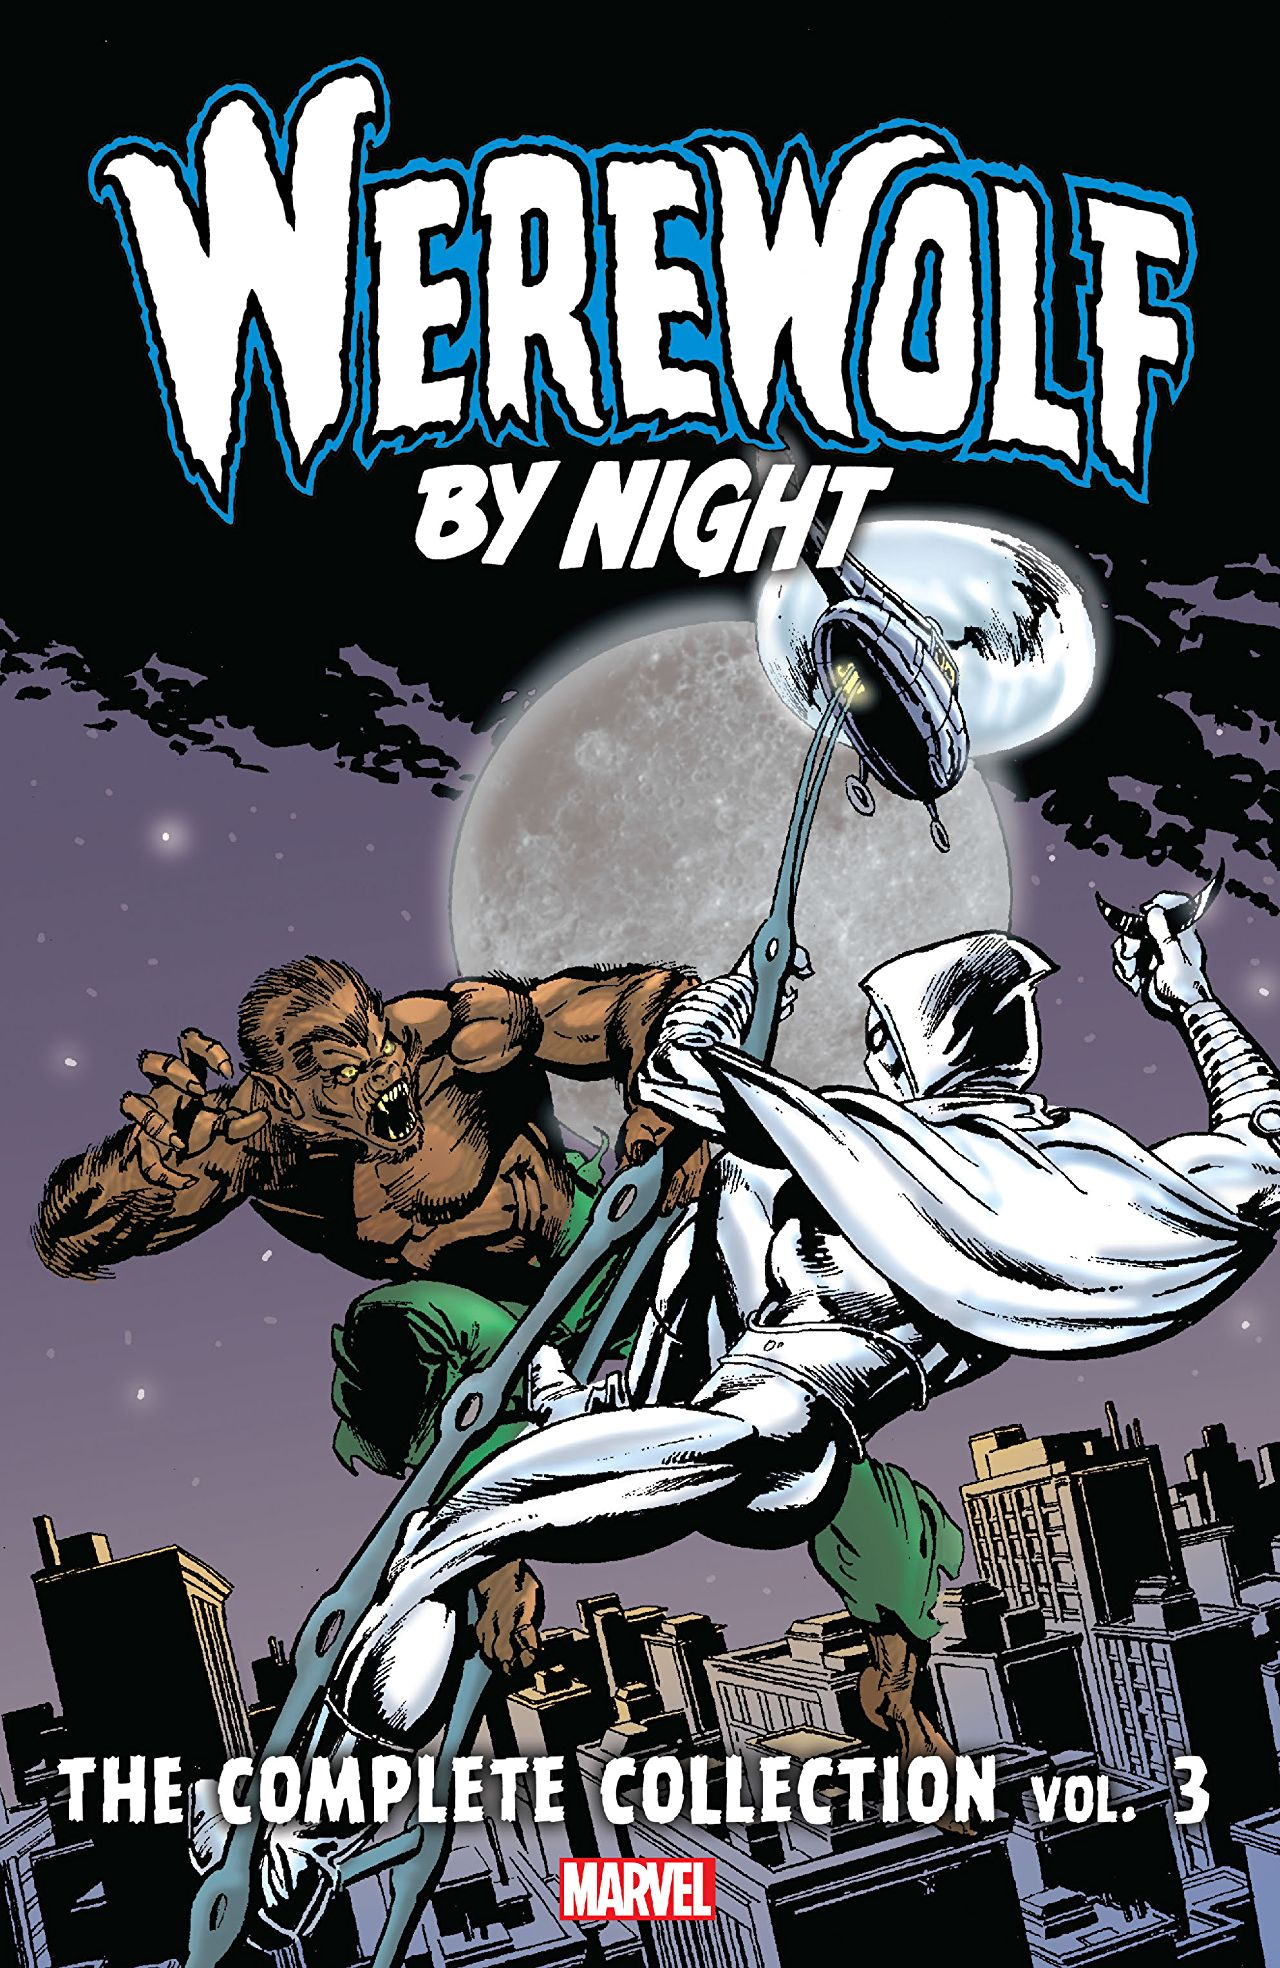 'Werewolf By Night: The Complete Collection Vol. 3' review: blending superheroes with pulp horror